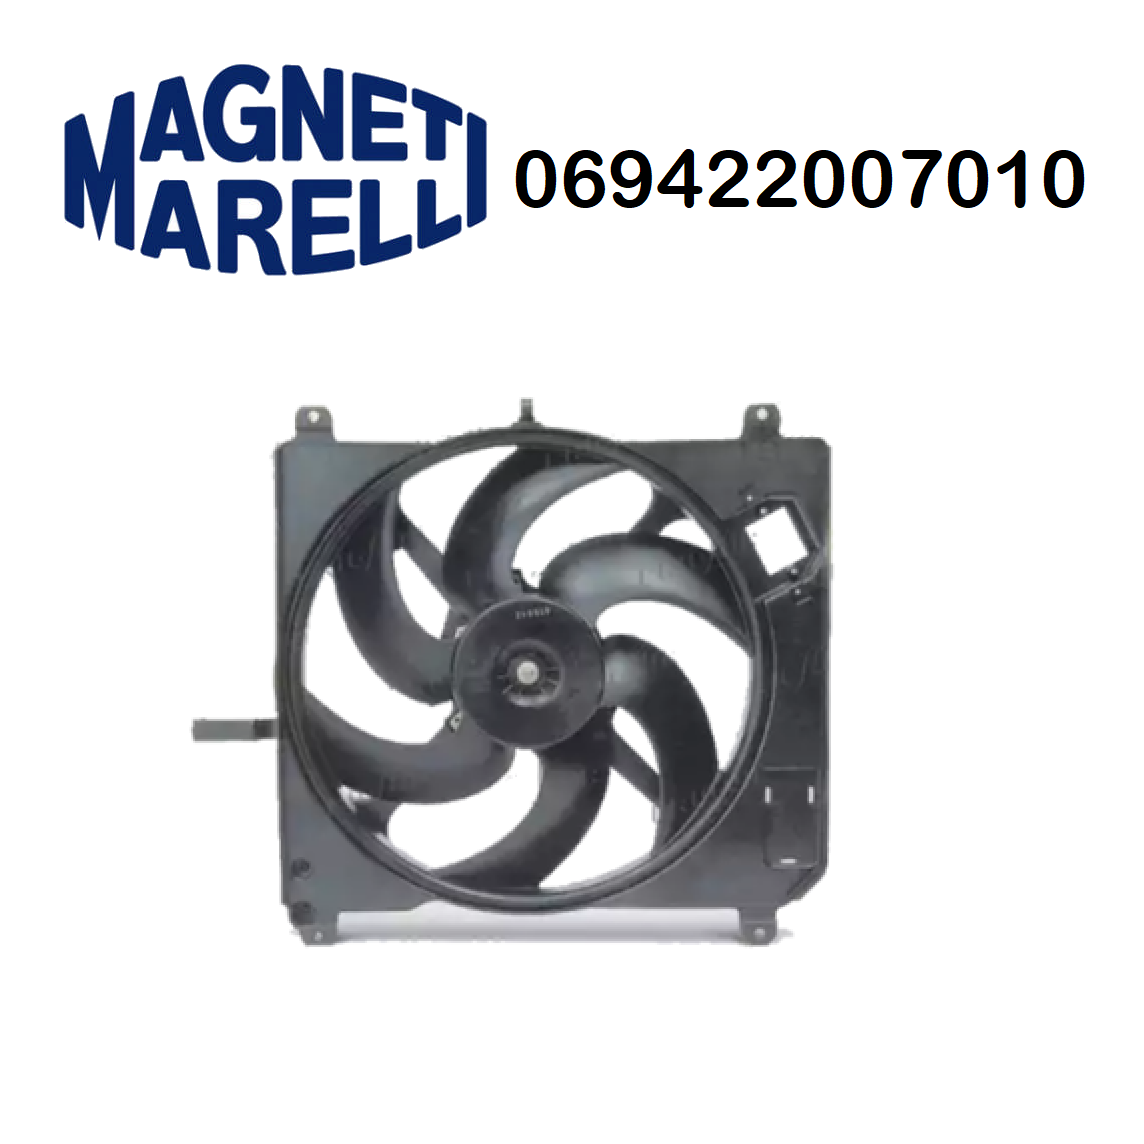 FIAT BRAVA - BRAVO - MAREA MARELLI ENGINE COOLING FAN FOR 46465005